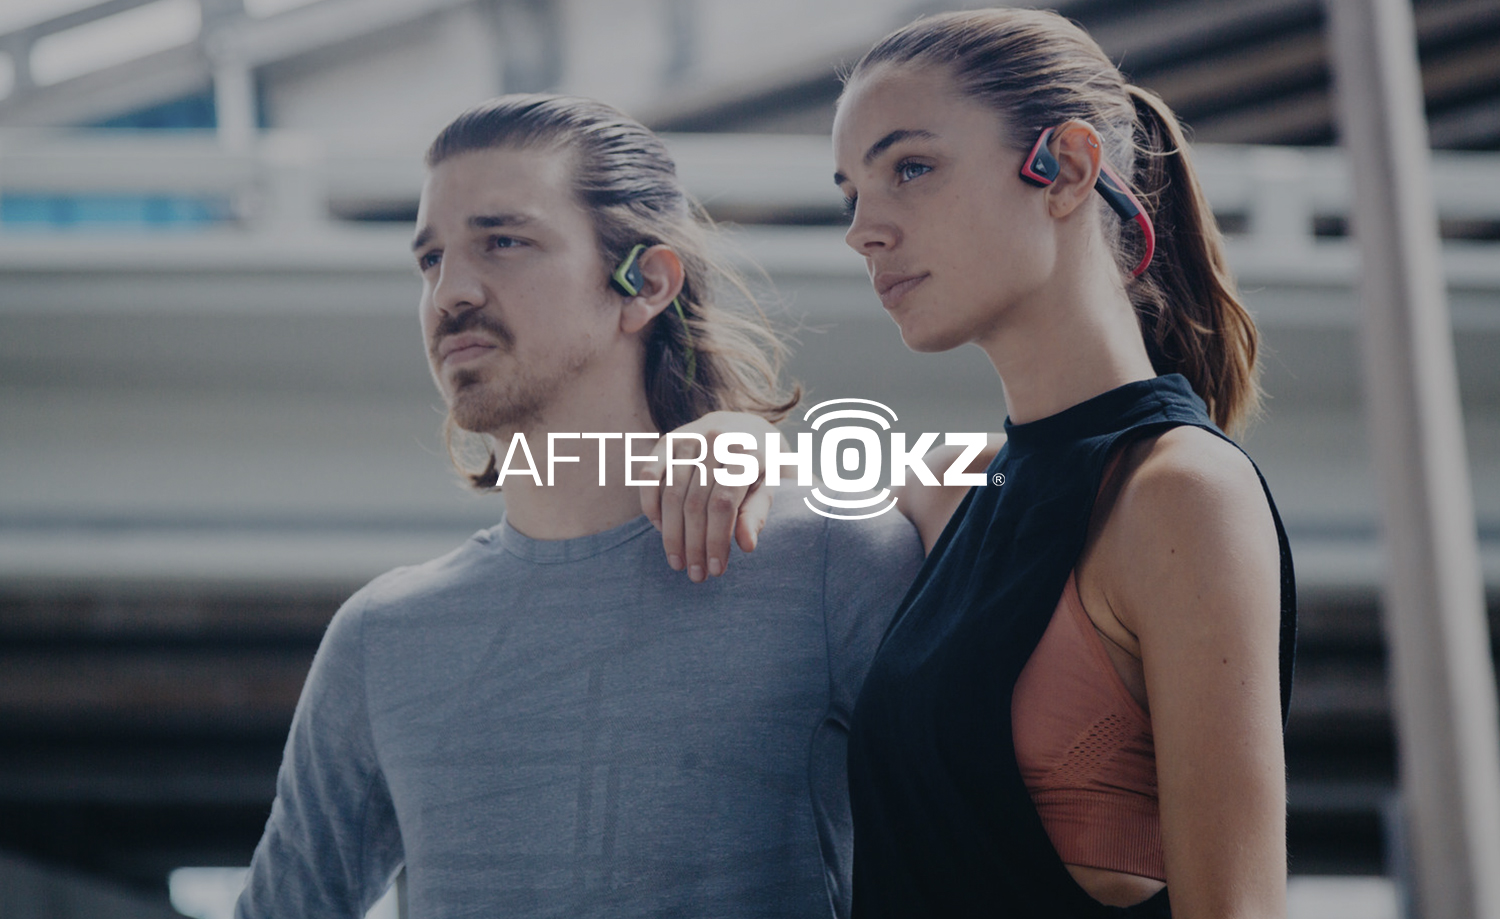 Aftershokz_Hero2.jpg